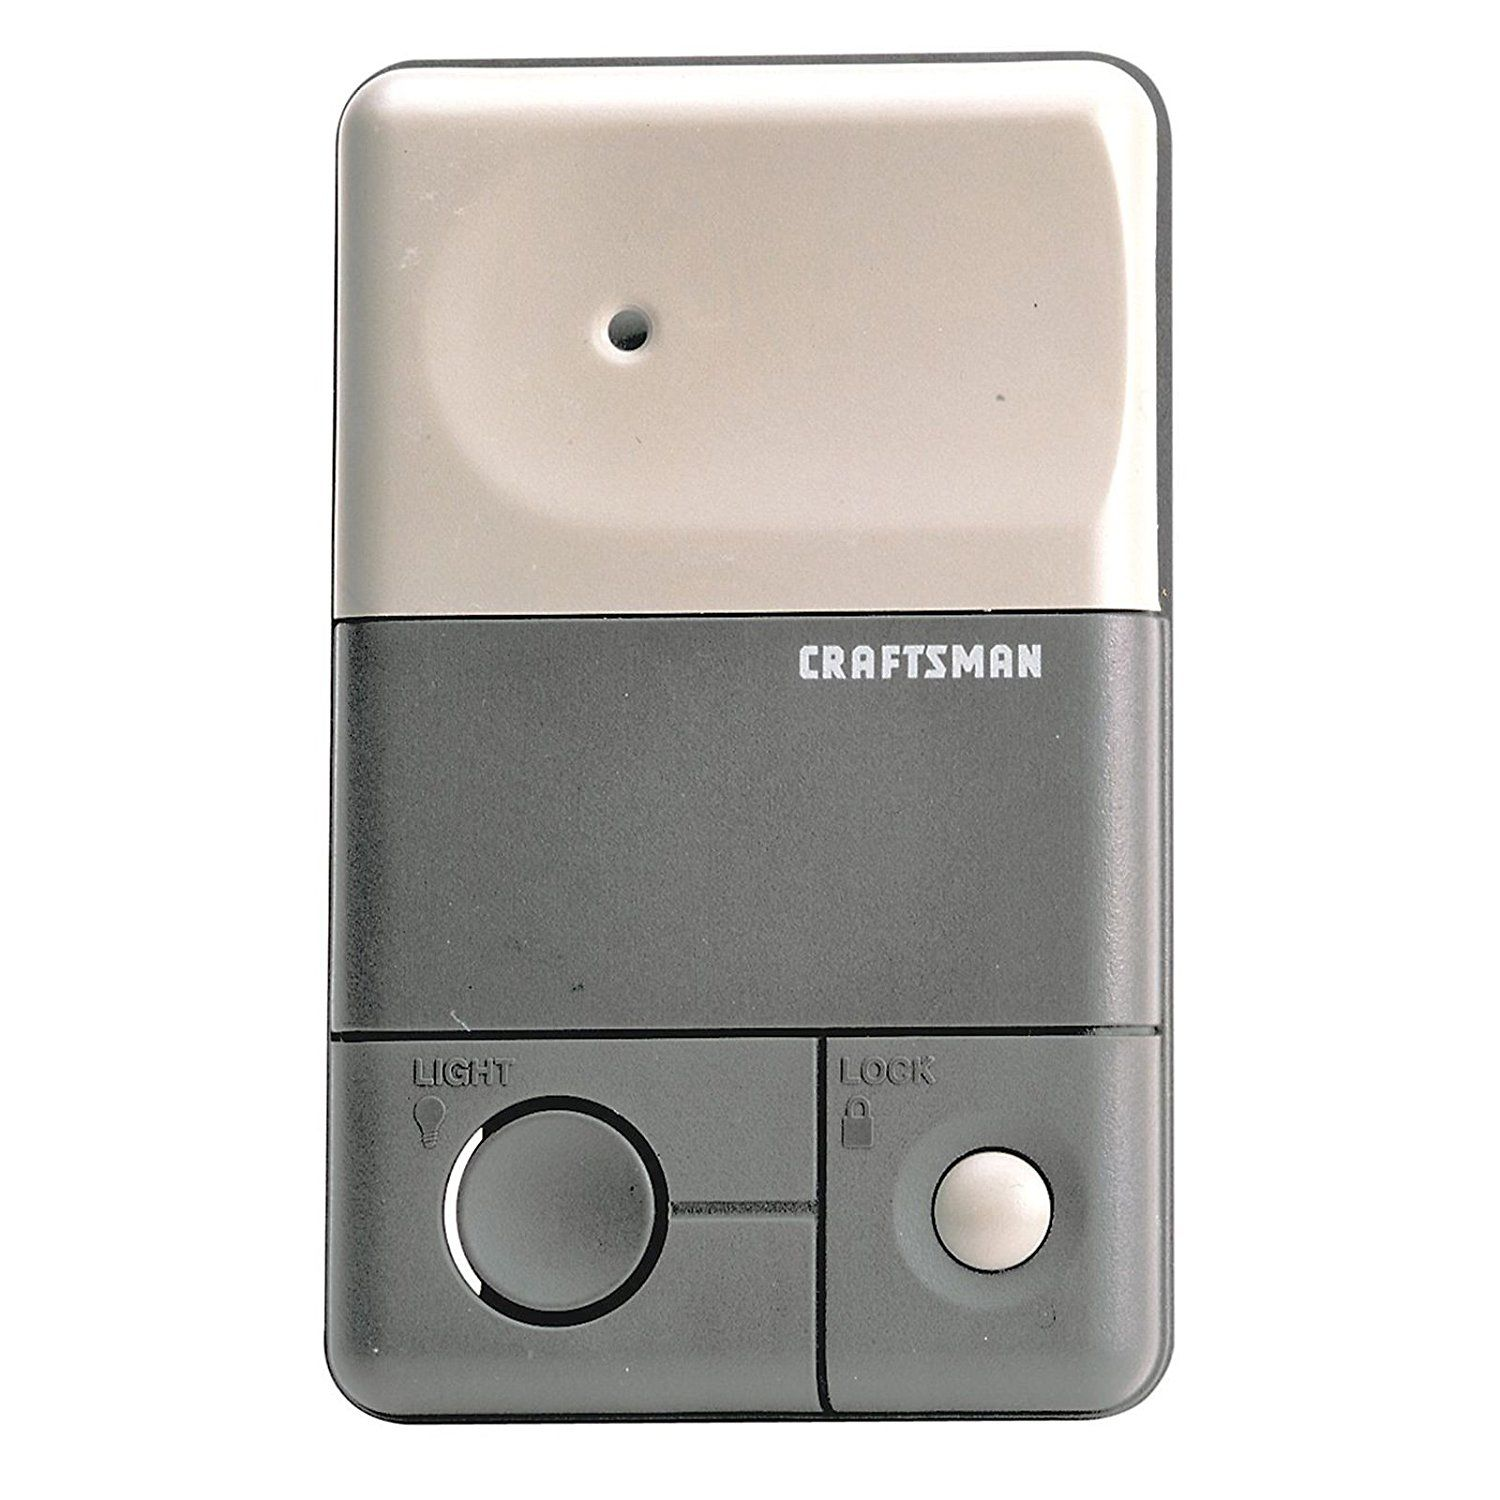 Craftsman Wall Control Old Universal Garage Door Remote Garage Doors Craftsman Garage Door